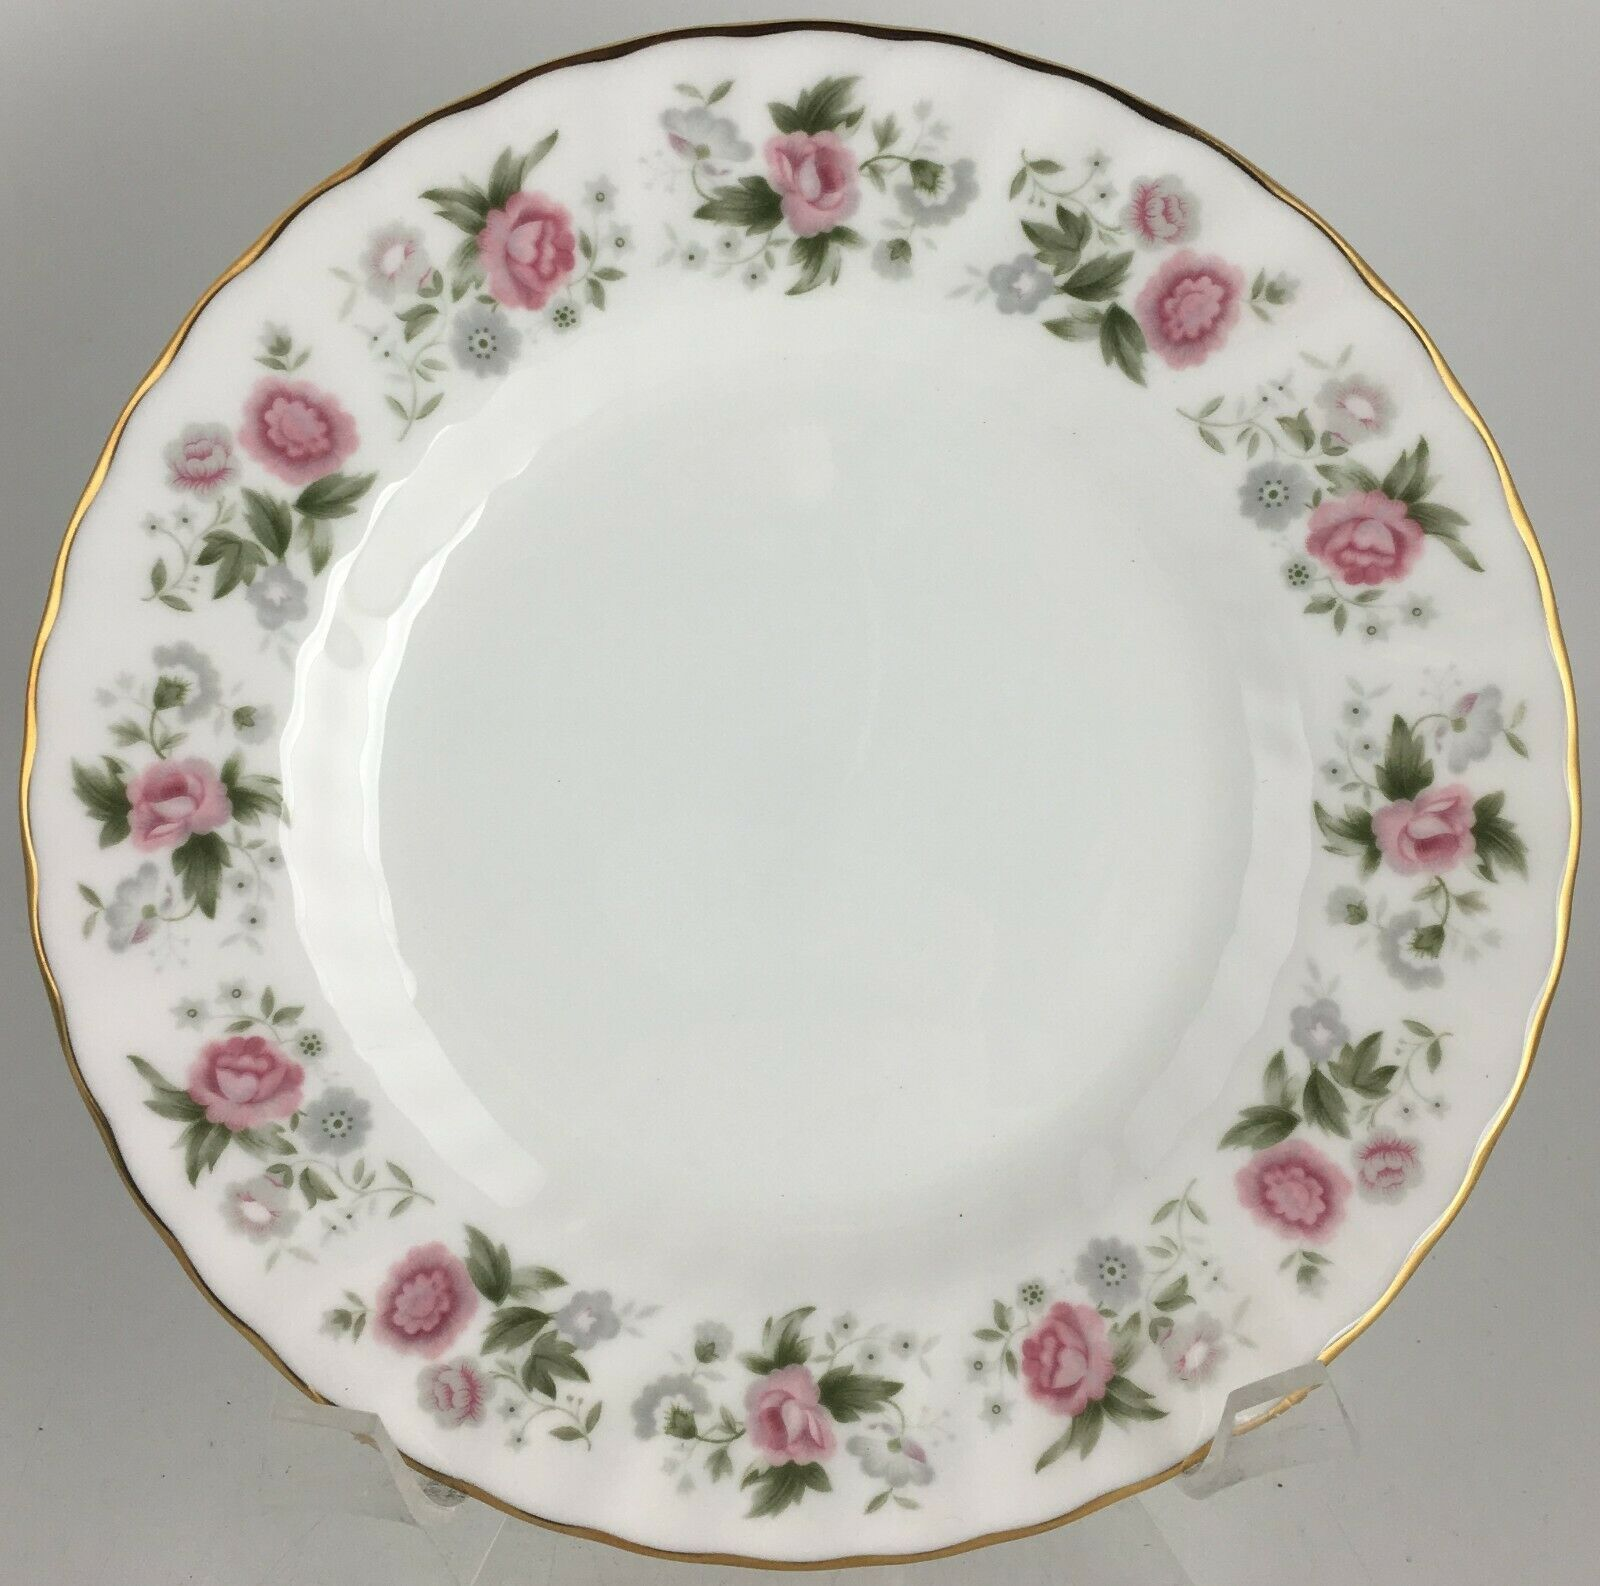 Minton Spring Bouquet Bread & butter plate - $5.00